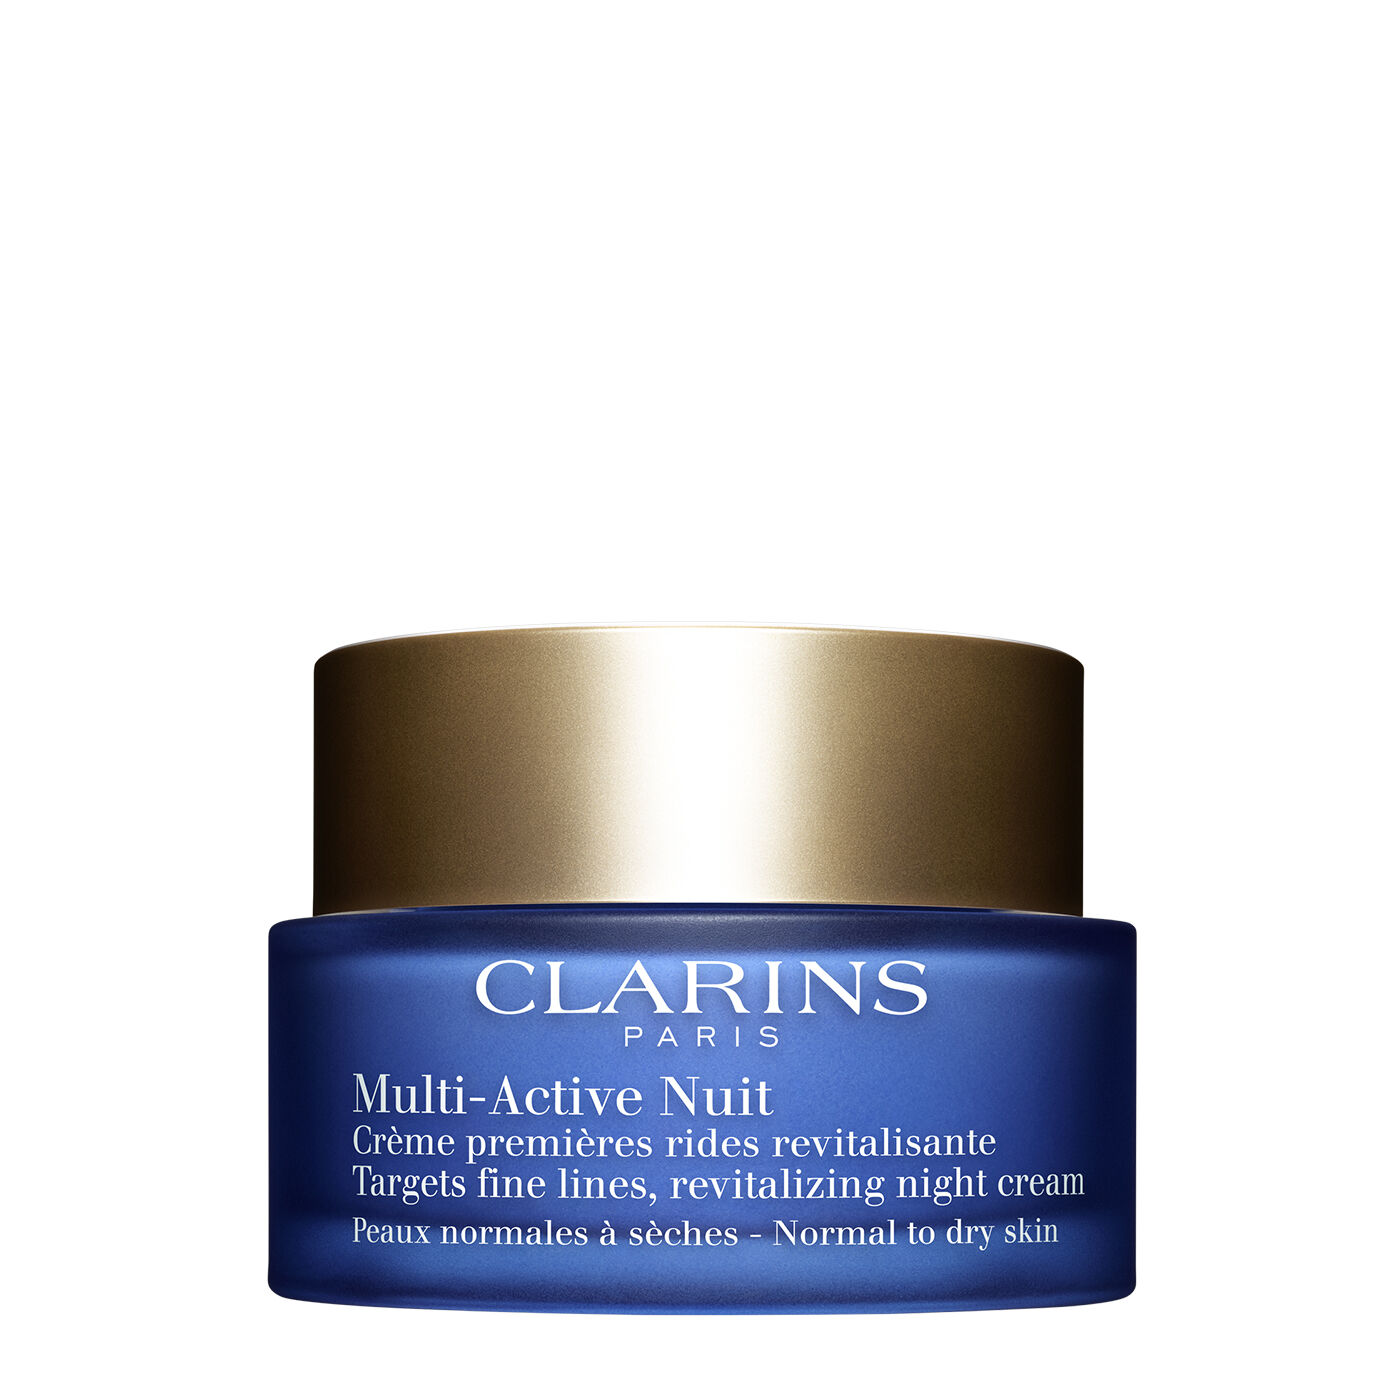 Clarins Multi-Active Night – Normal to Dry Skin